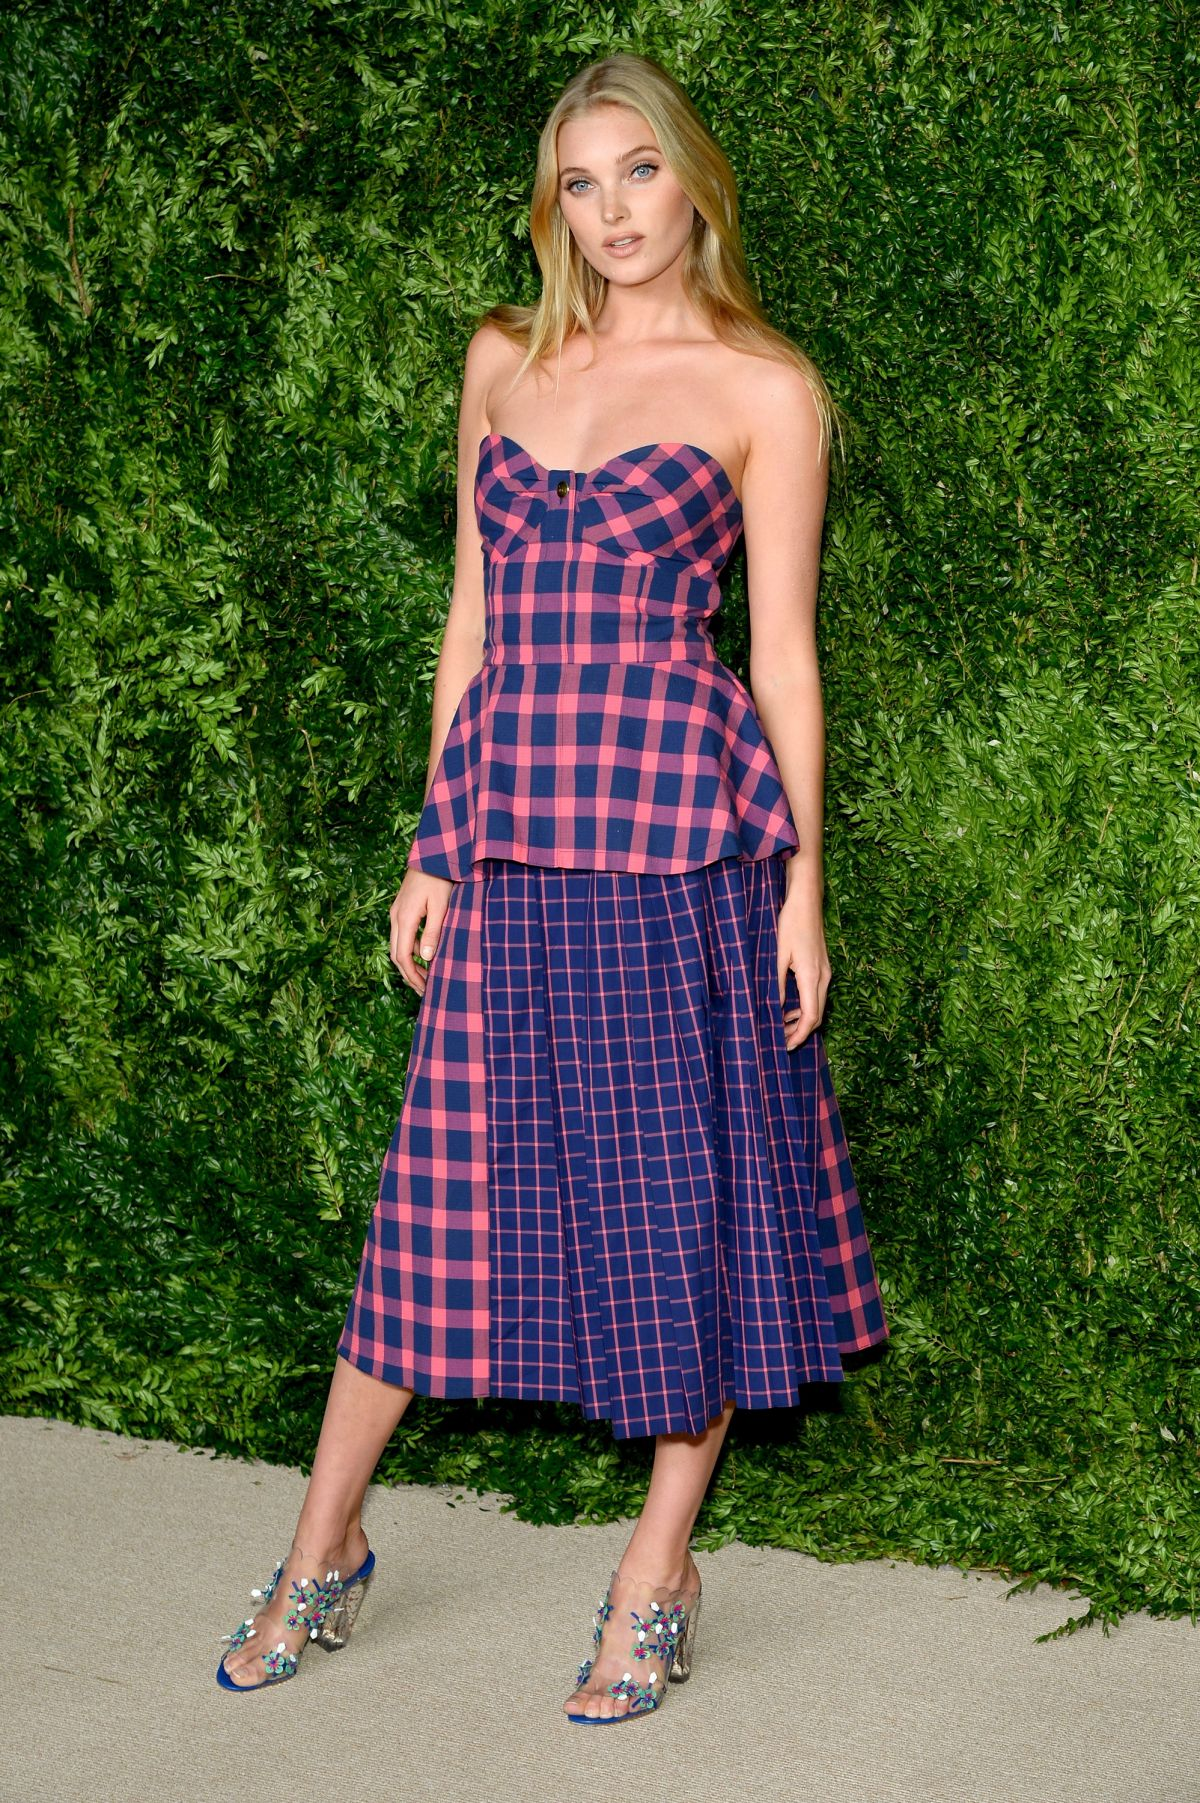 ELSA HOSK at 12th Annual CFDA/Vogue Fashion Fund Awards in New York 11/02/2015